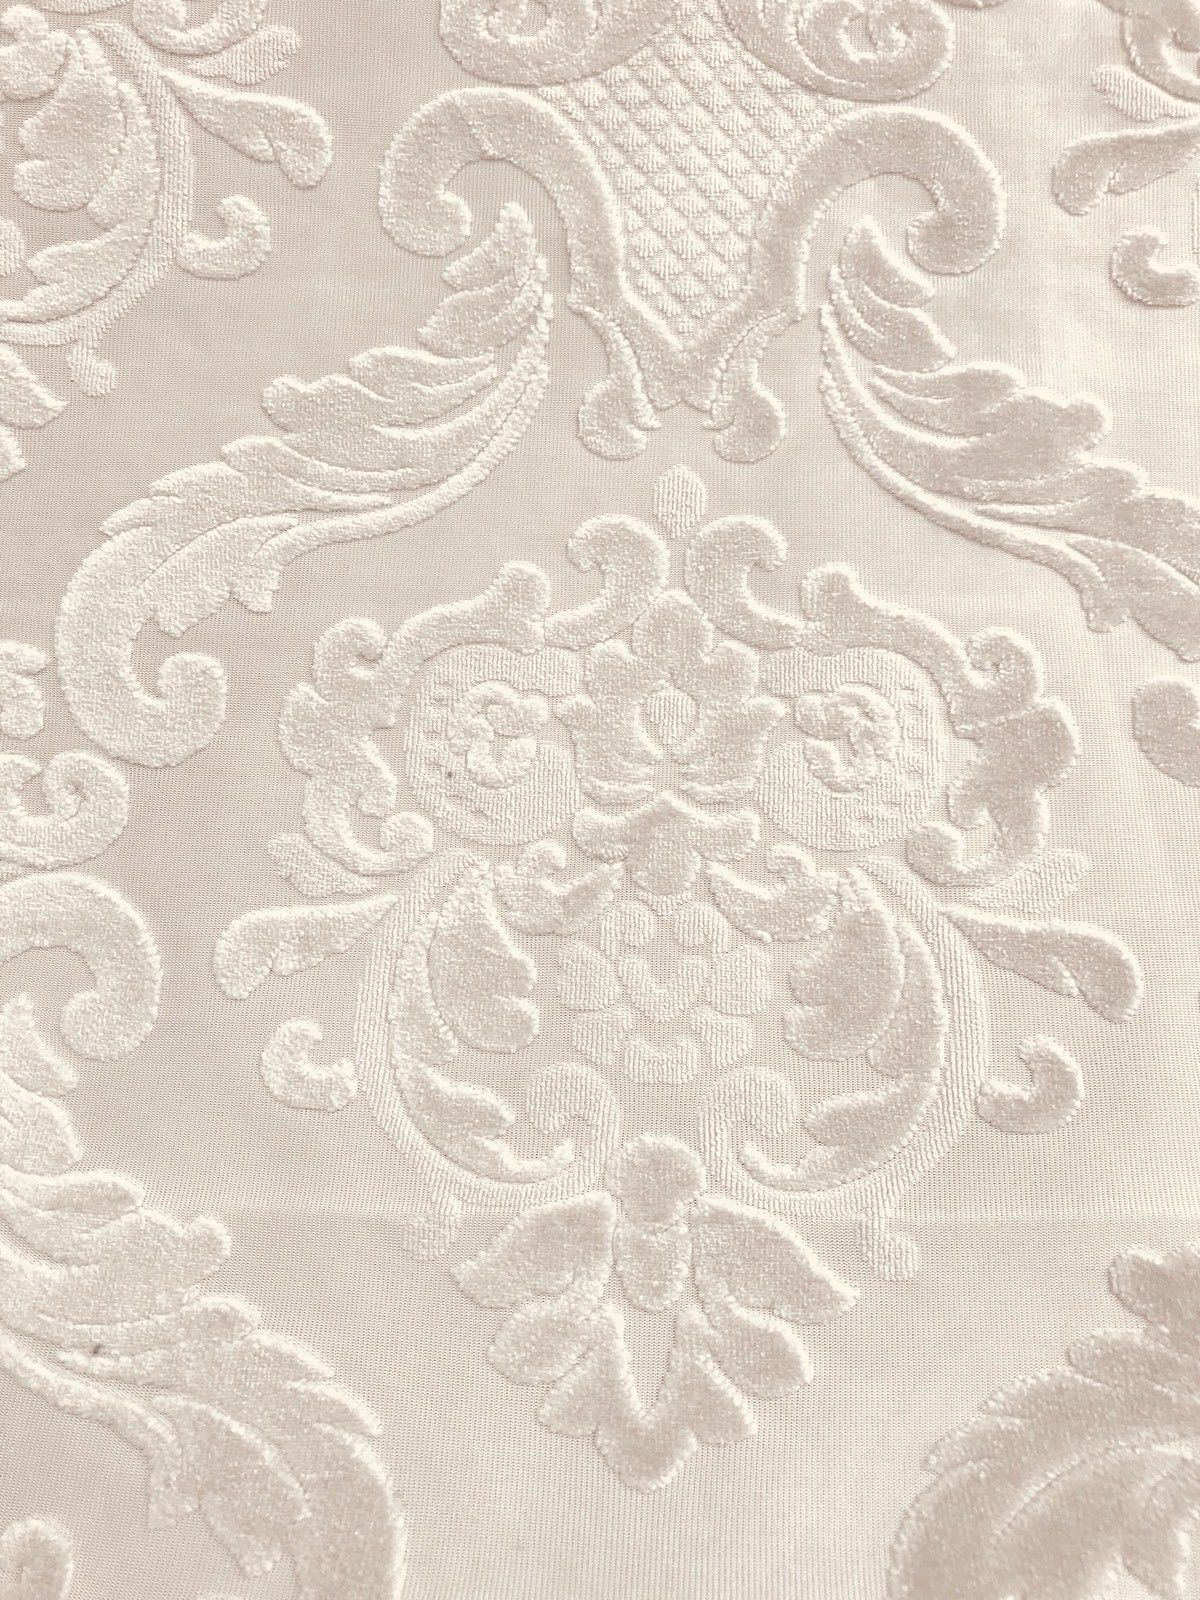 SWATCH Cut Out Chenille Velvet Fabric- Upholstery- Burnout- Eggshell - Fancy Styles Fabric Boutique